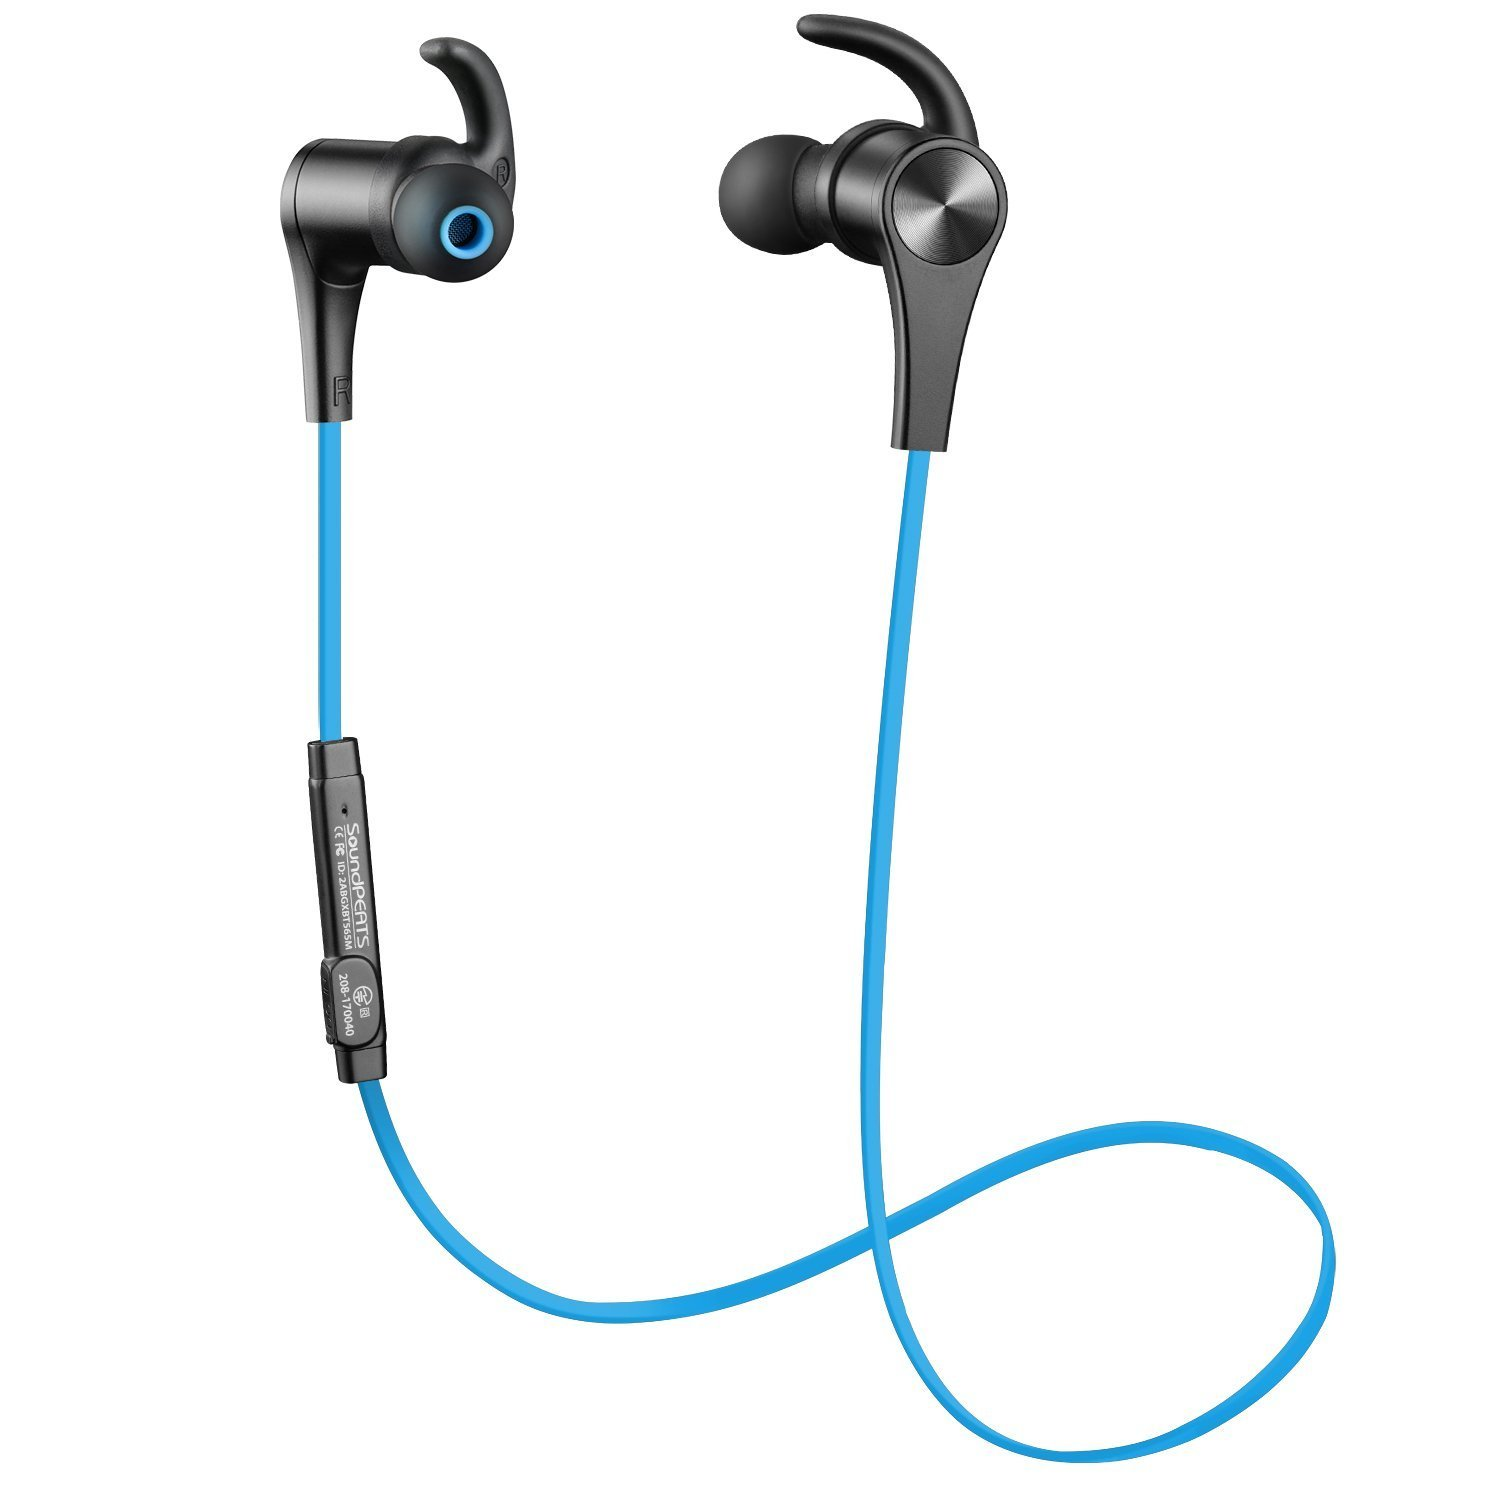 SoundPEATS Bluetooth Headphones Magnetic In-Ear Wireless Earbuds 4.1 Stereo Bluetooth Earphones for Sports Running With Mic (8 Hours Play Time, Hands-Free Calls, In-Line Control) - Blue by SoundPEATS